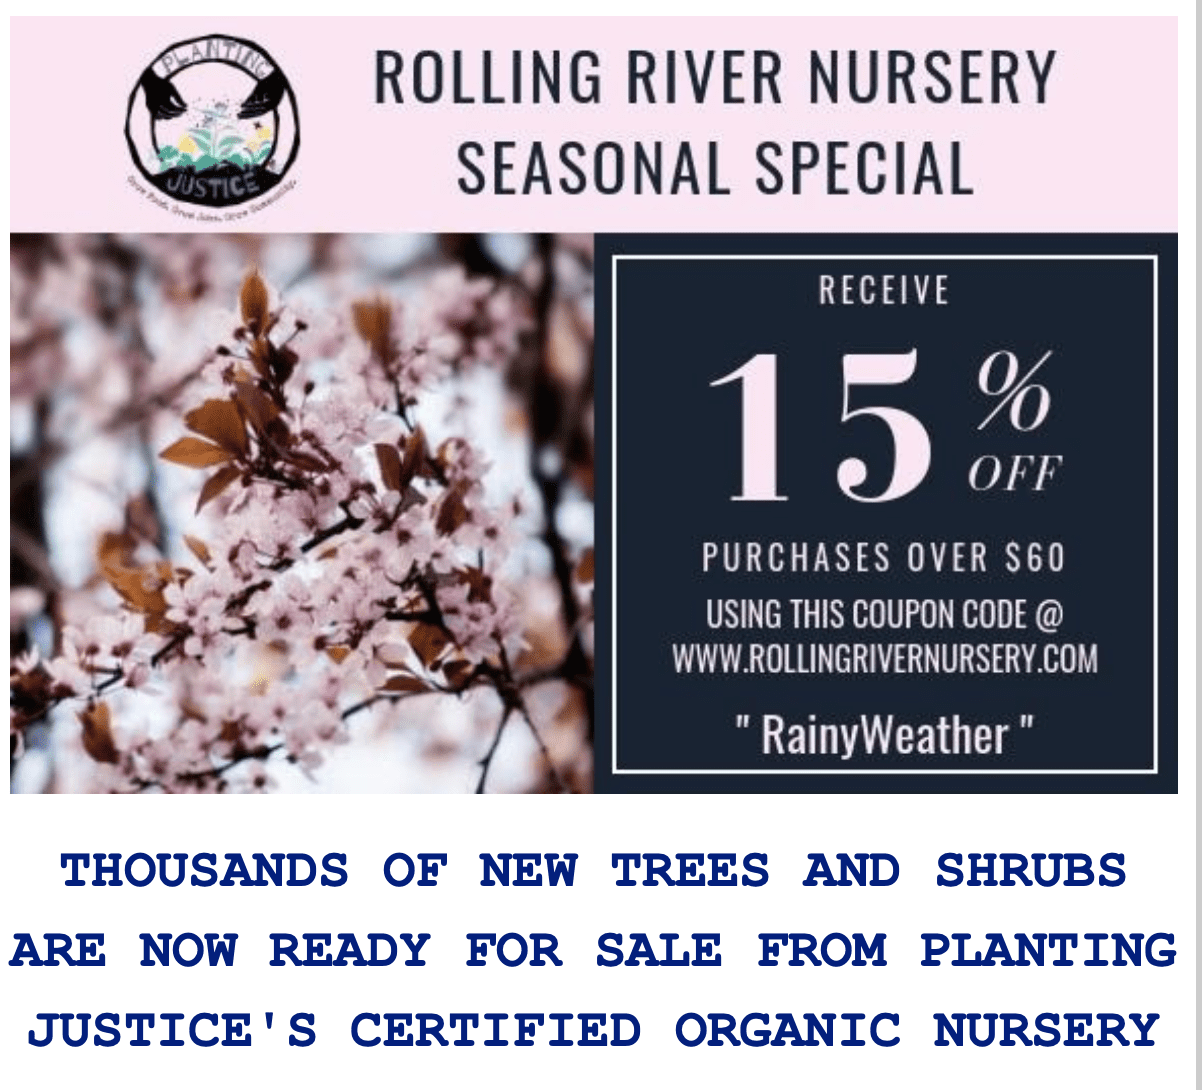 Don't miss this season's specials from the Planting Justice Nursery in Oakland ScreenShot2019 05 02at11.11.15PM